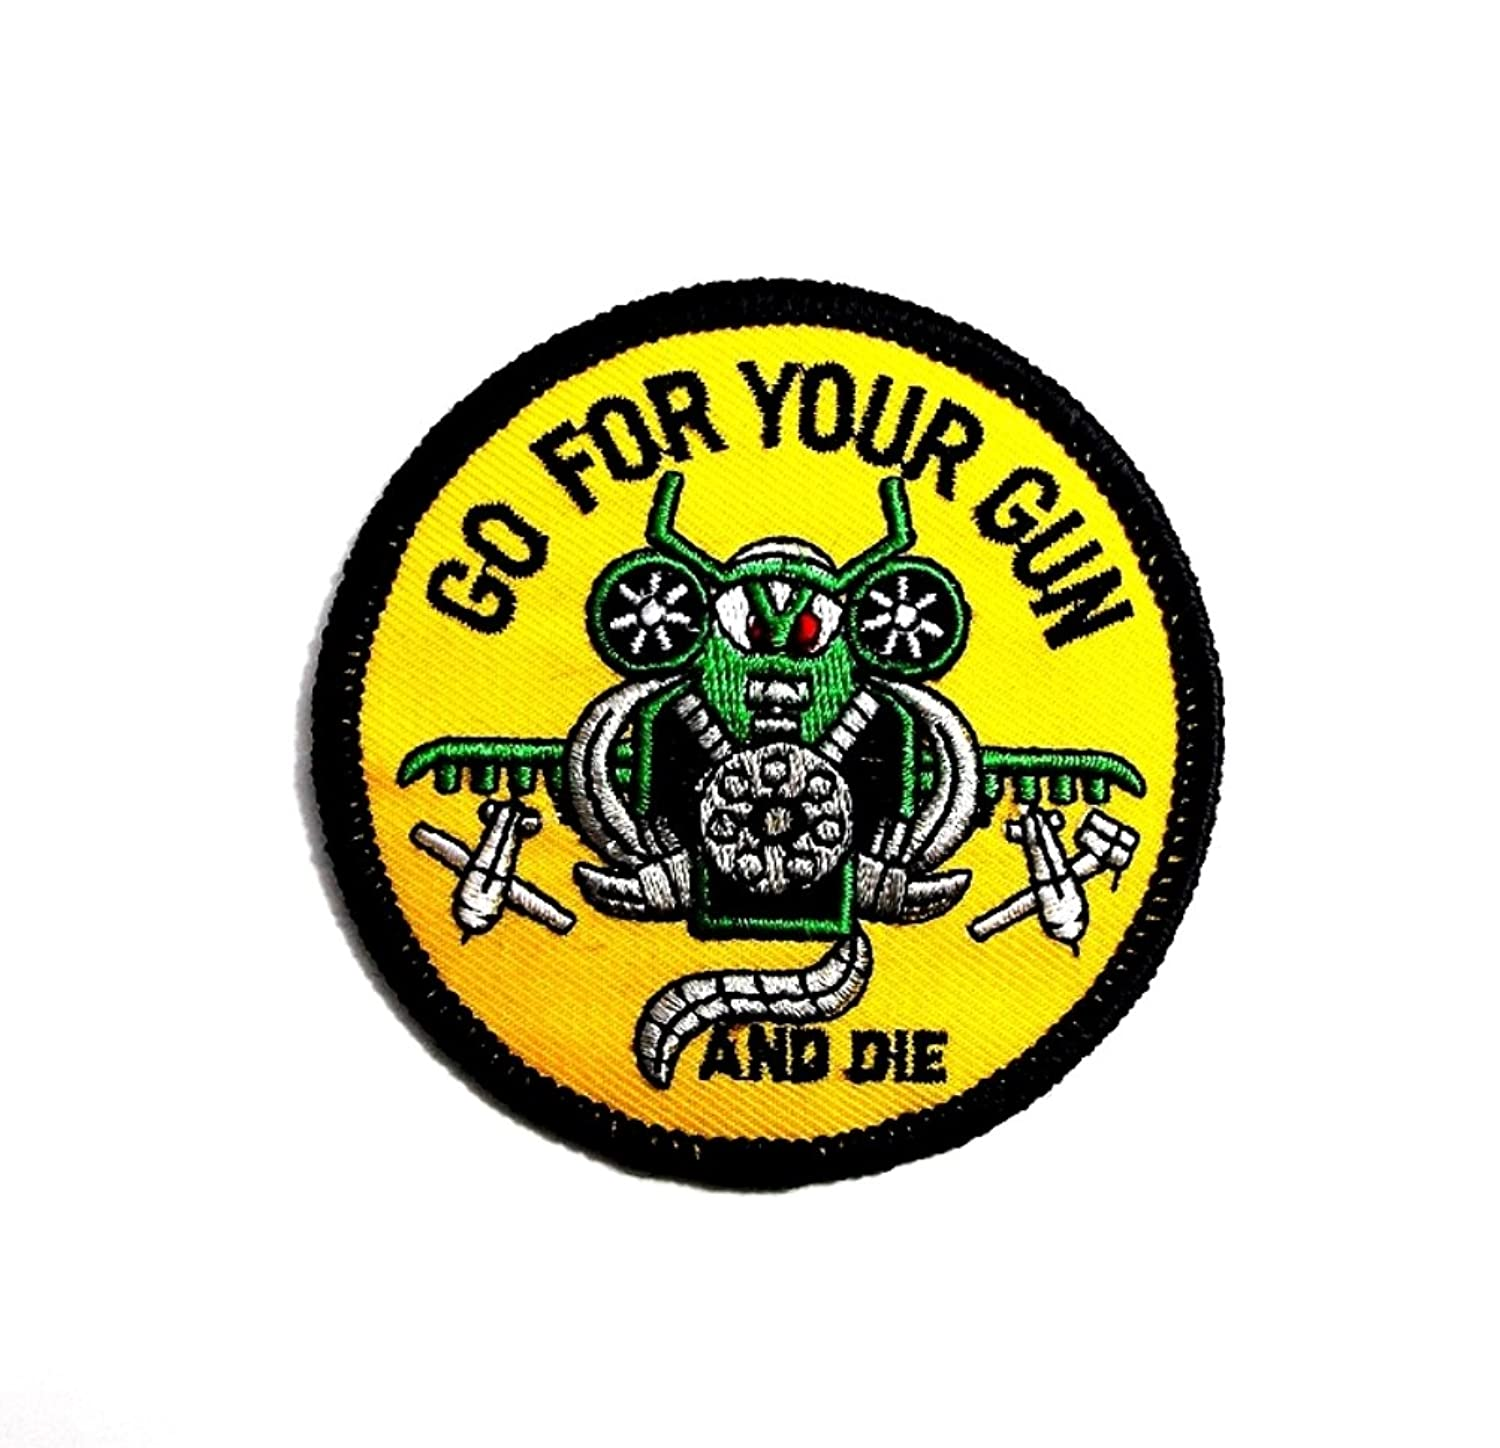 Amazon.com: USAF Air Force A-10 Warthog Embroidered Military Patch ...